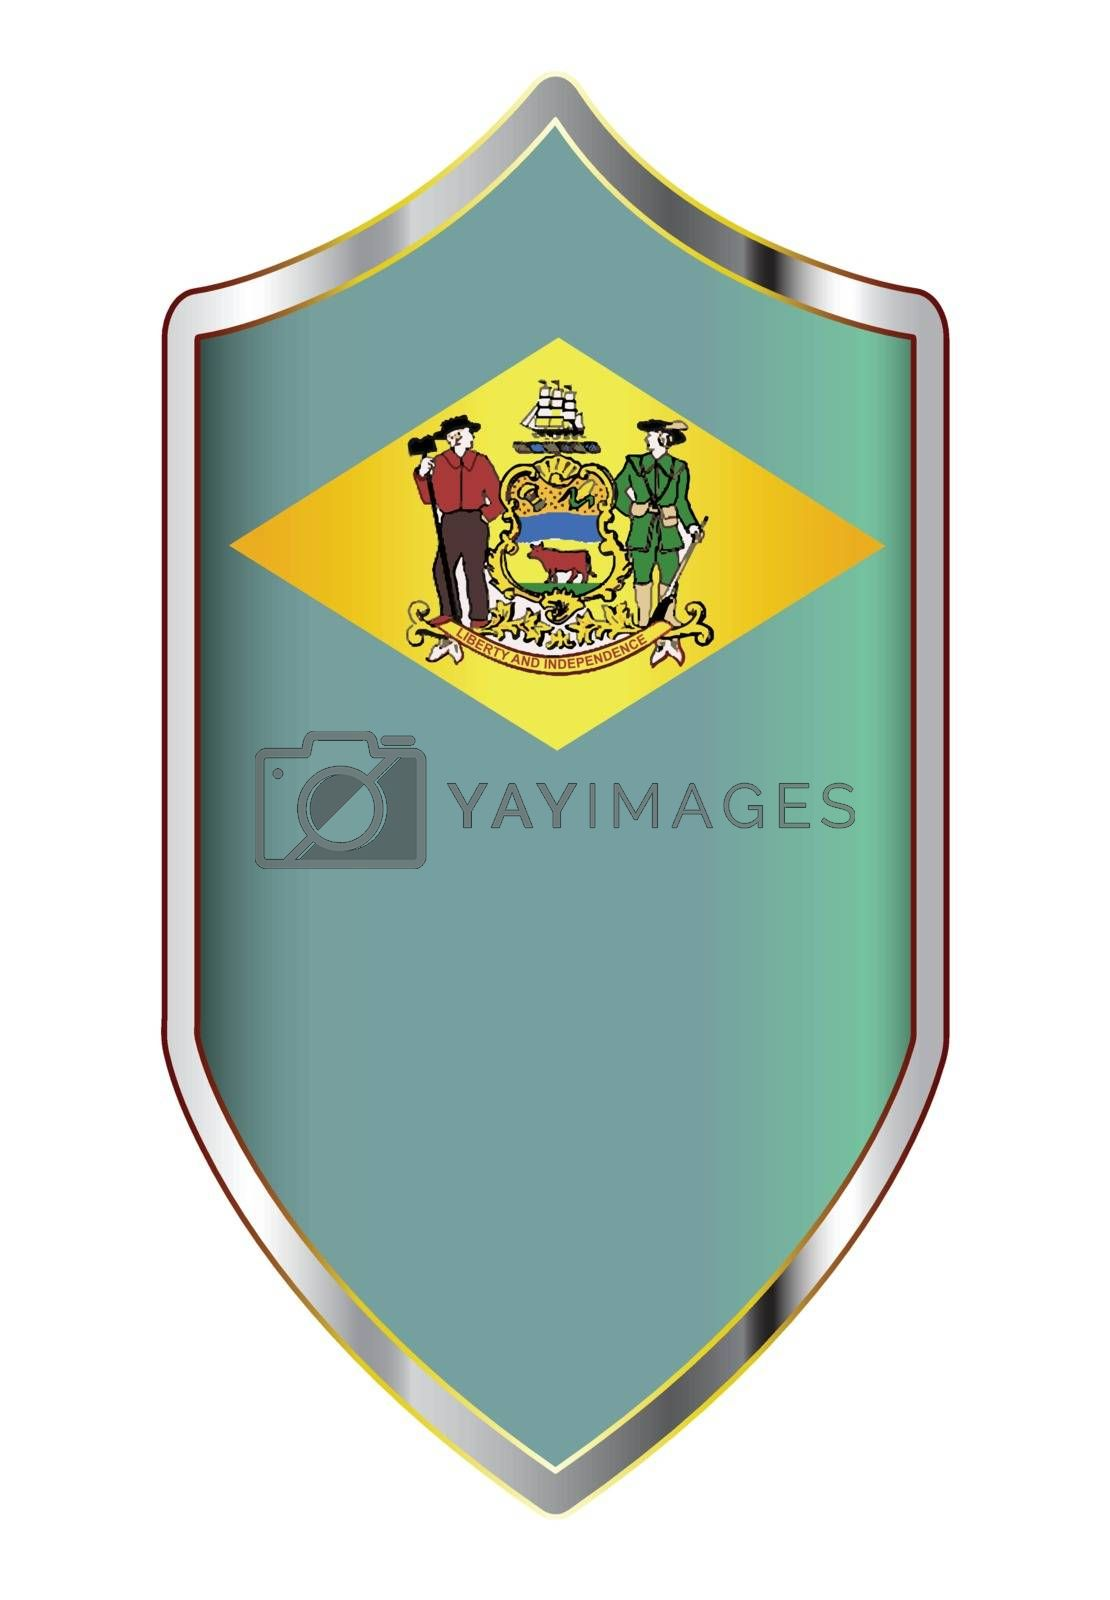 A typical crusader type shield with the state flag of Delaware all isolated on a white background